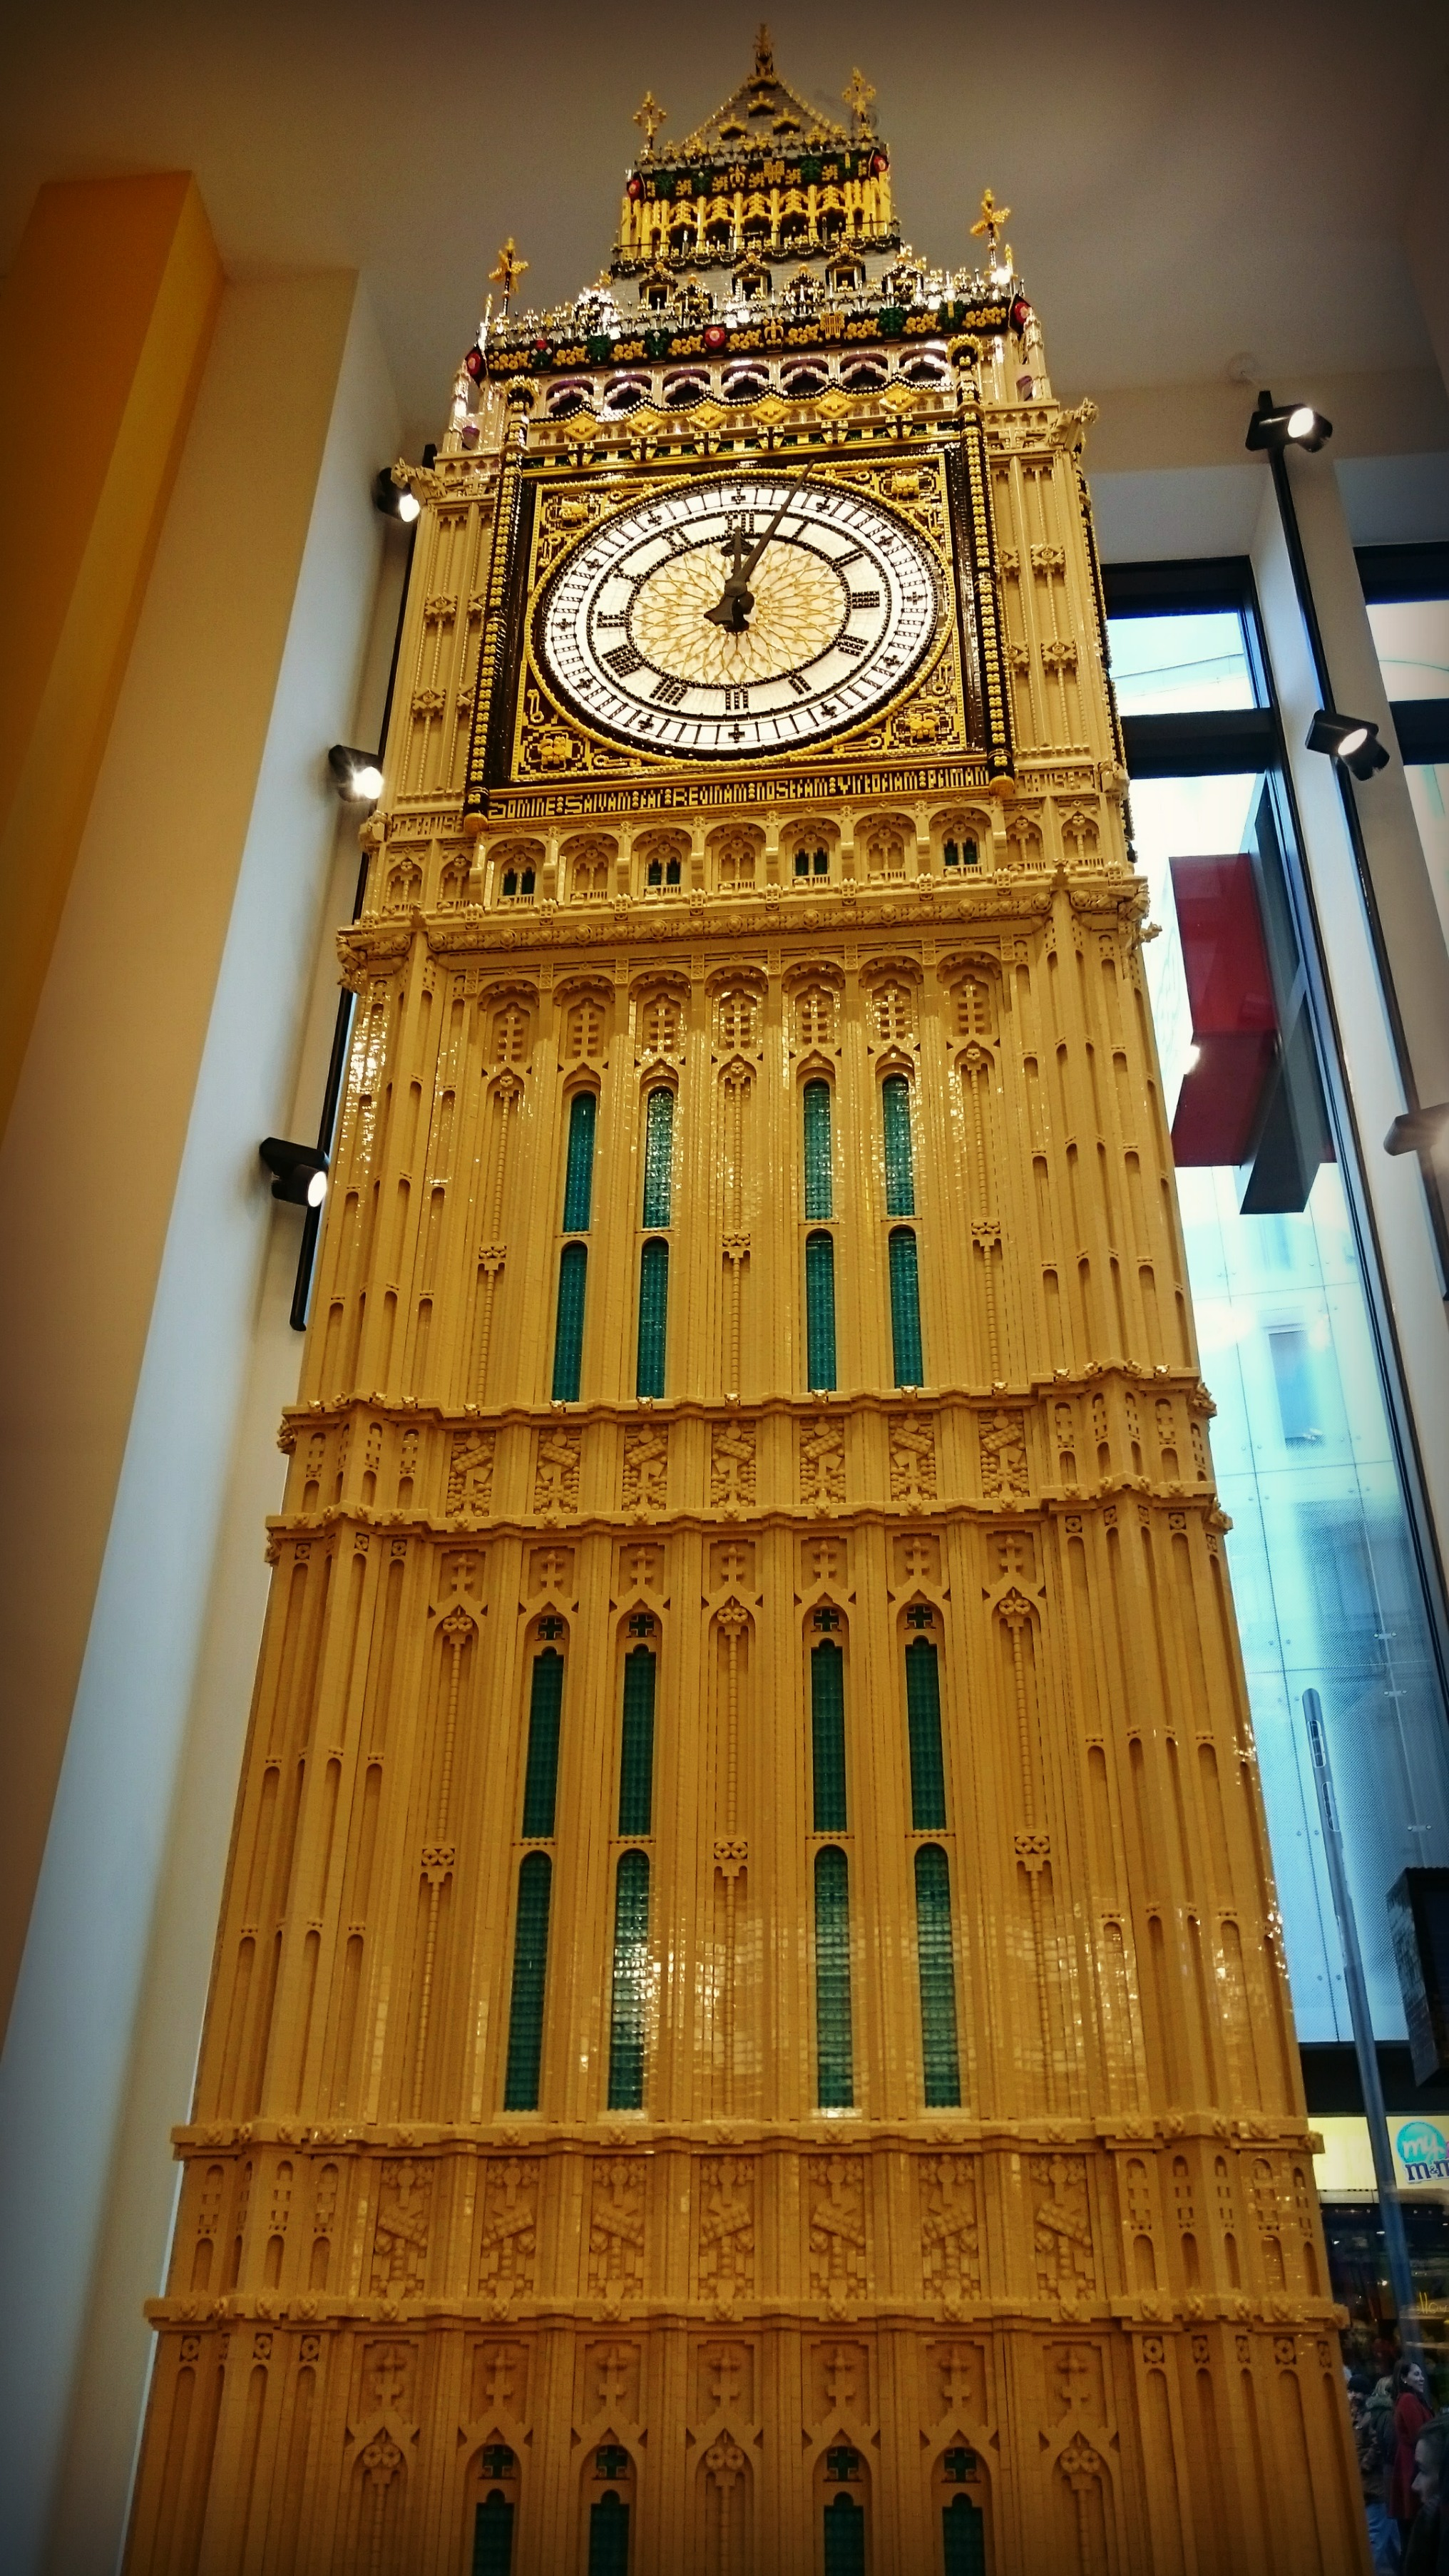 Lego Big Ben at the Lego London store